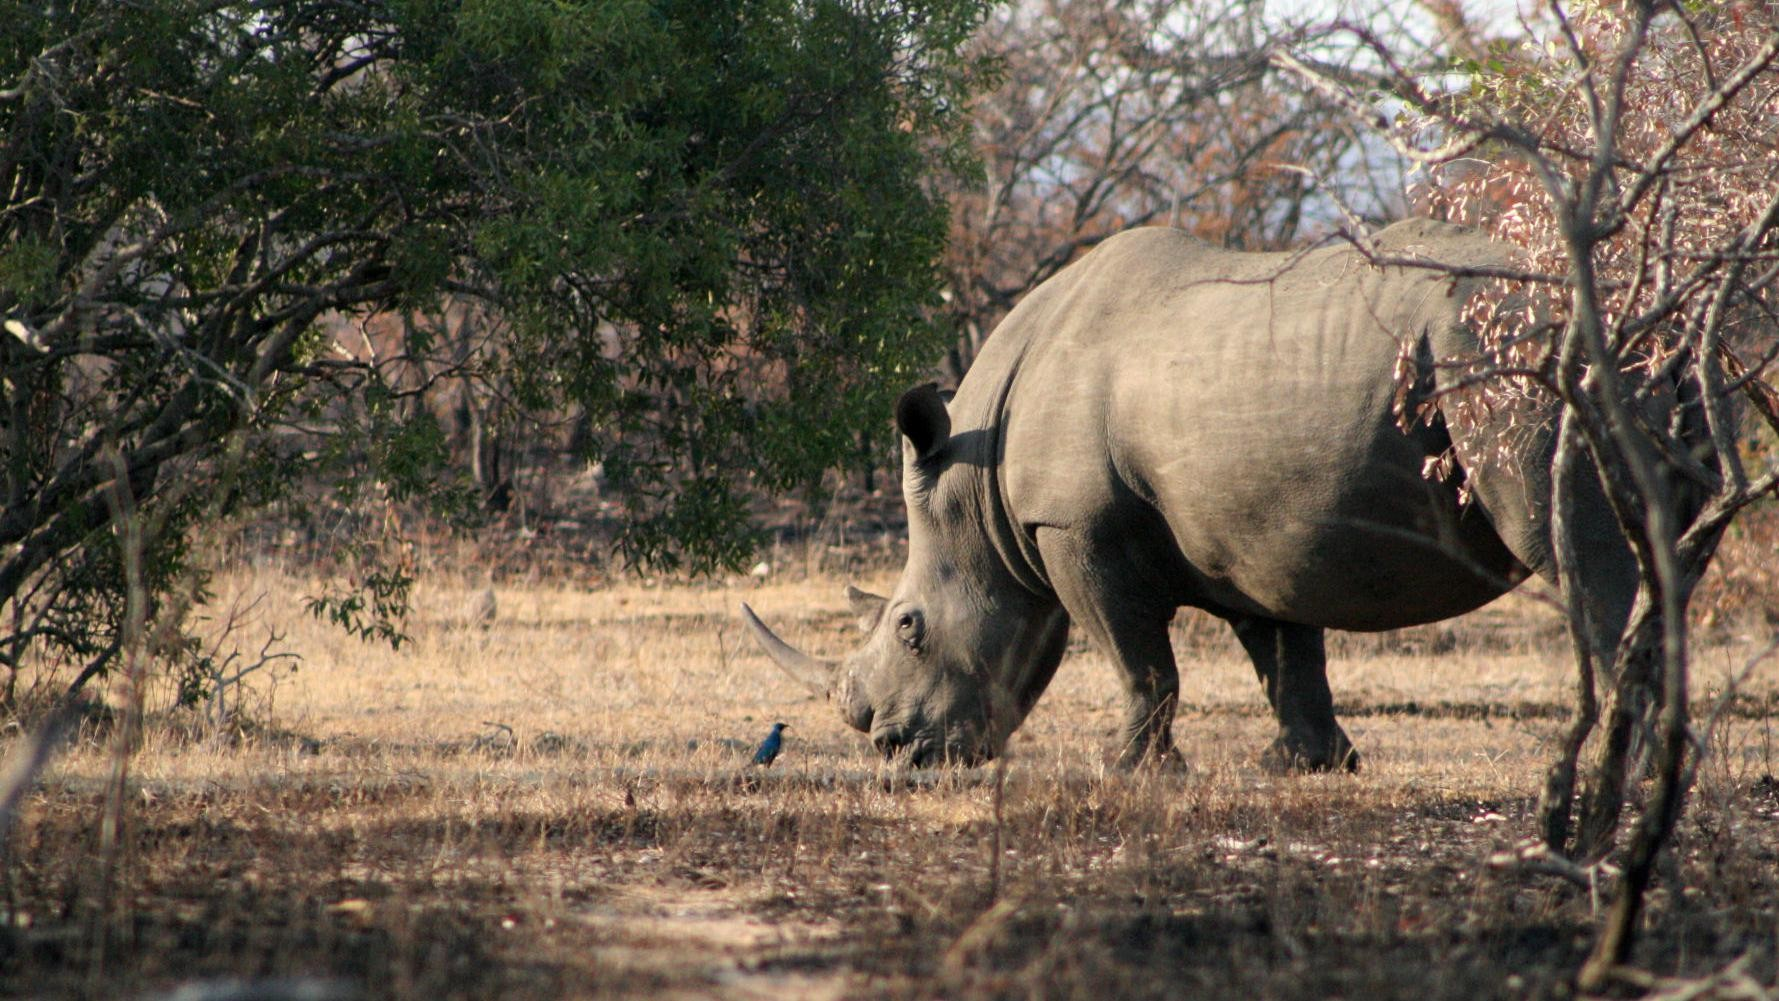 A South African Rhino Farmer Is Trying to Buy U.S. Drones to Fight Poachers